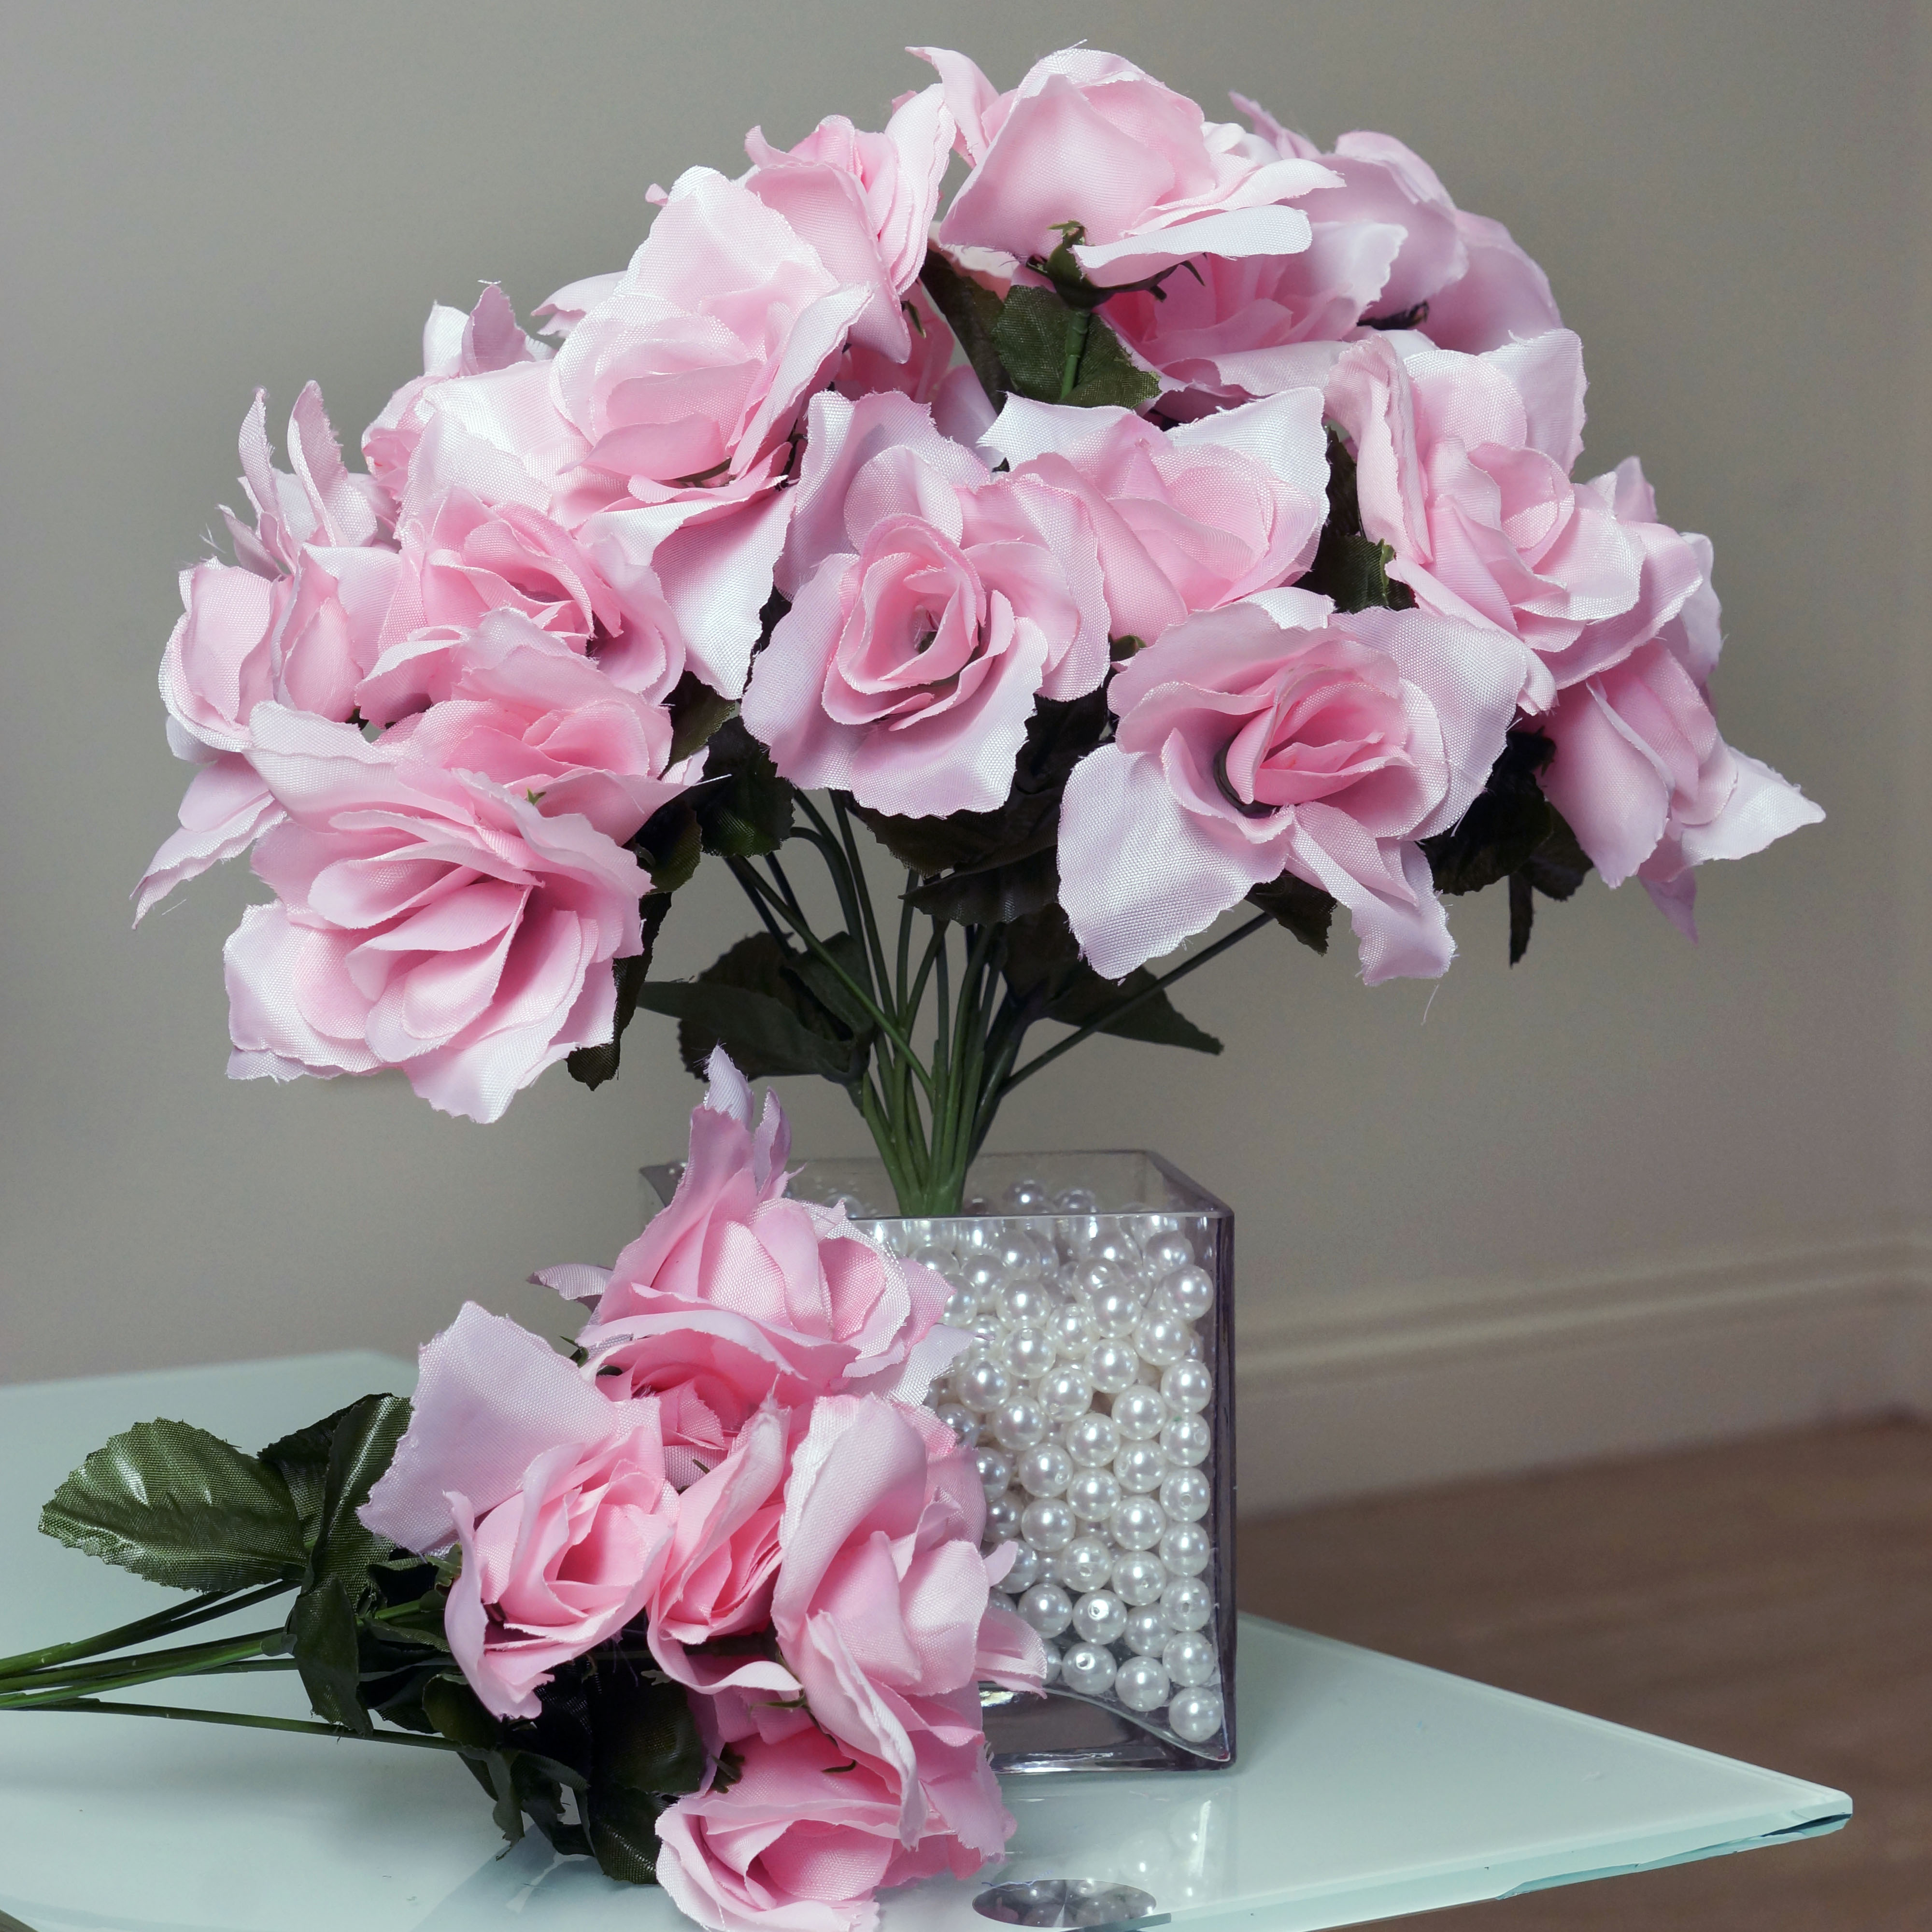 252 silk open roses wedding wholesale discounted flowers bouquets centerpieces ebay. Black Bedroom Furniture Sets. Home Design Ideas